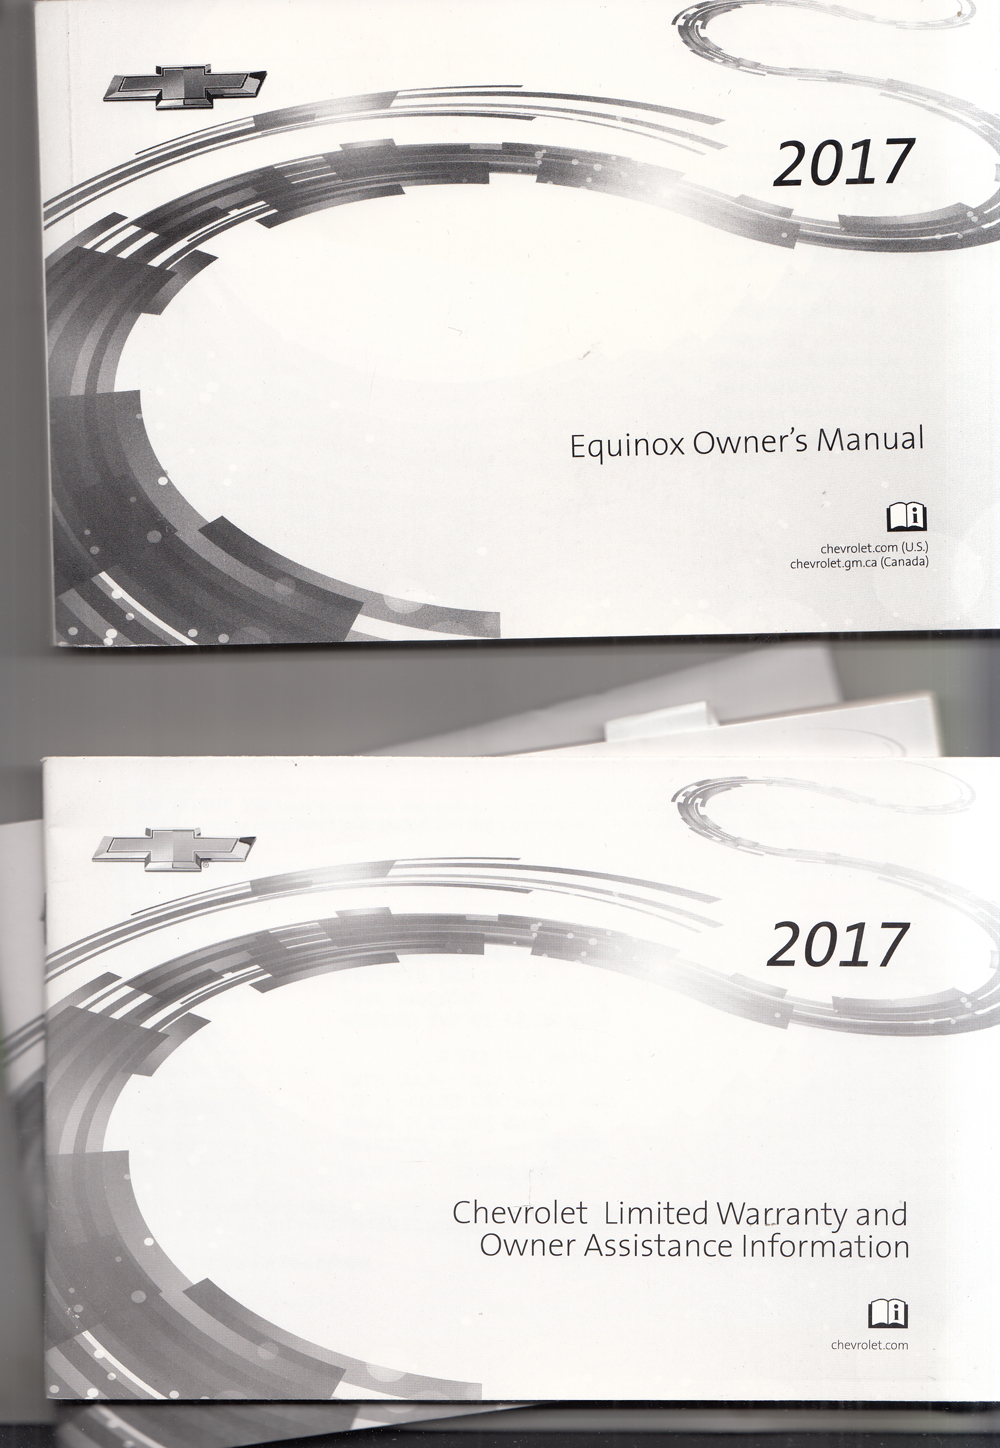 2017 Chevrolet Equinox Owners Manual with Pamphlets Original